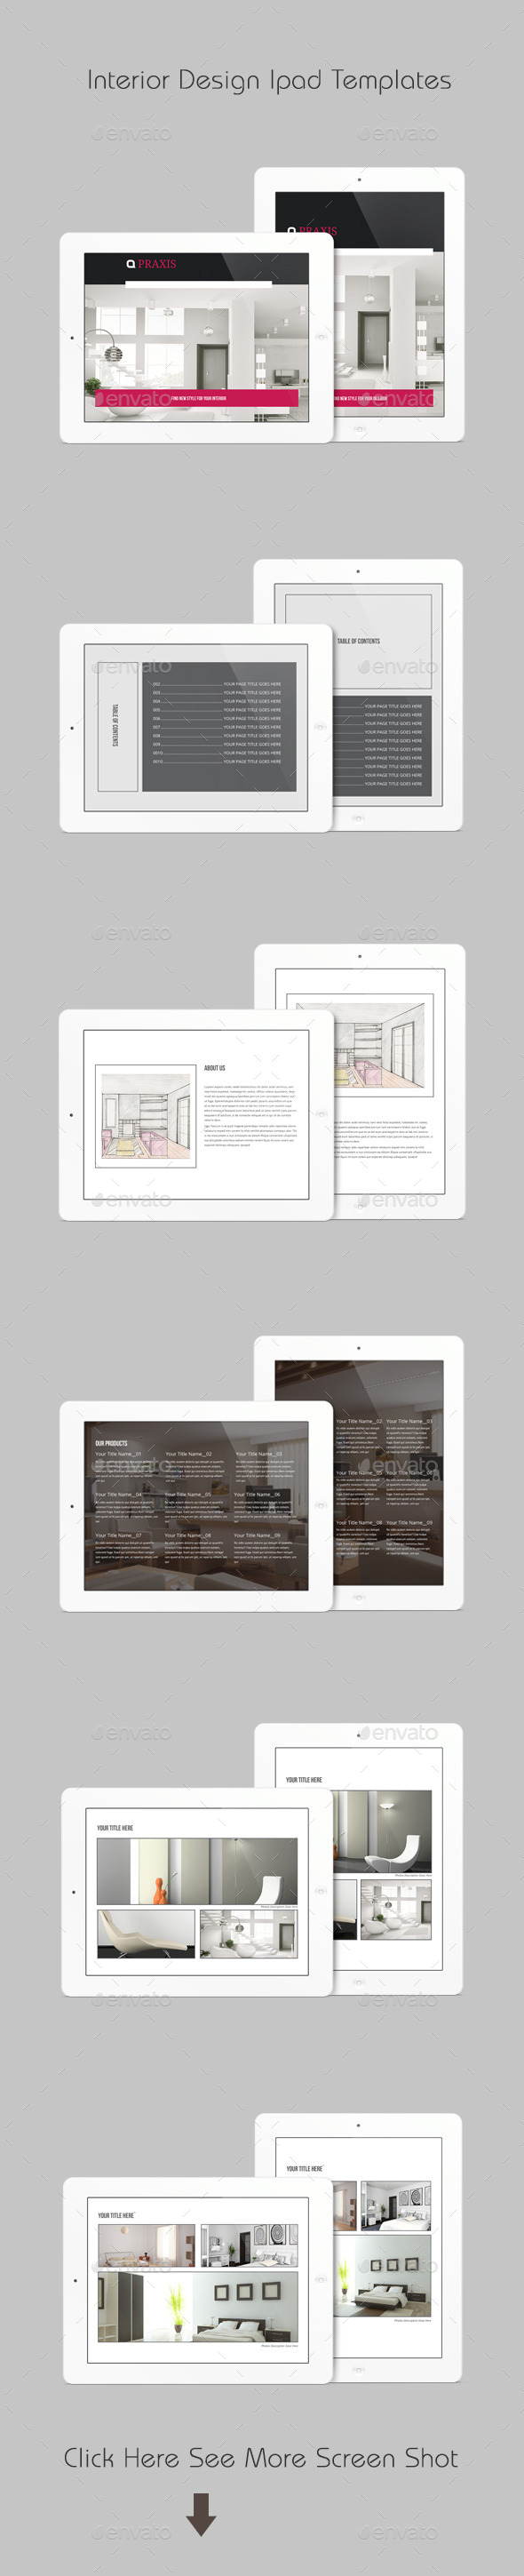 Interior Design Ipad Templates - ePublishing